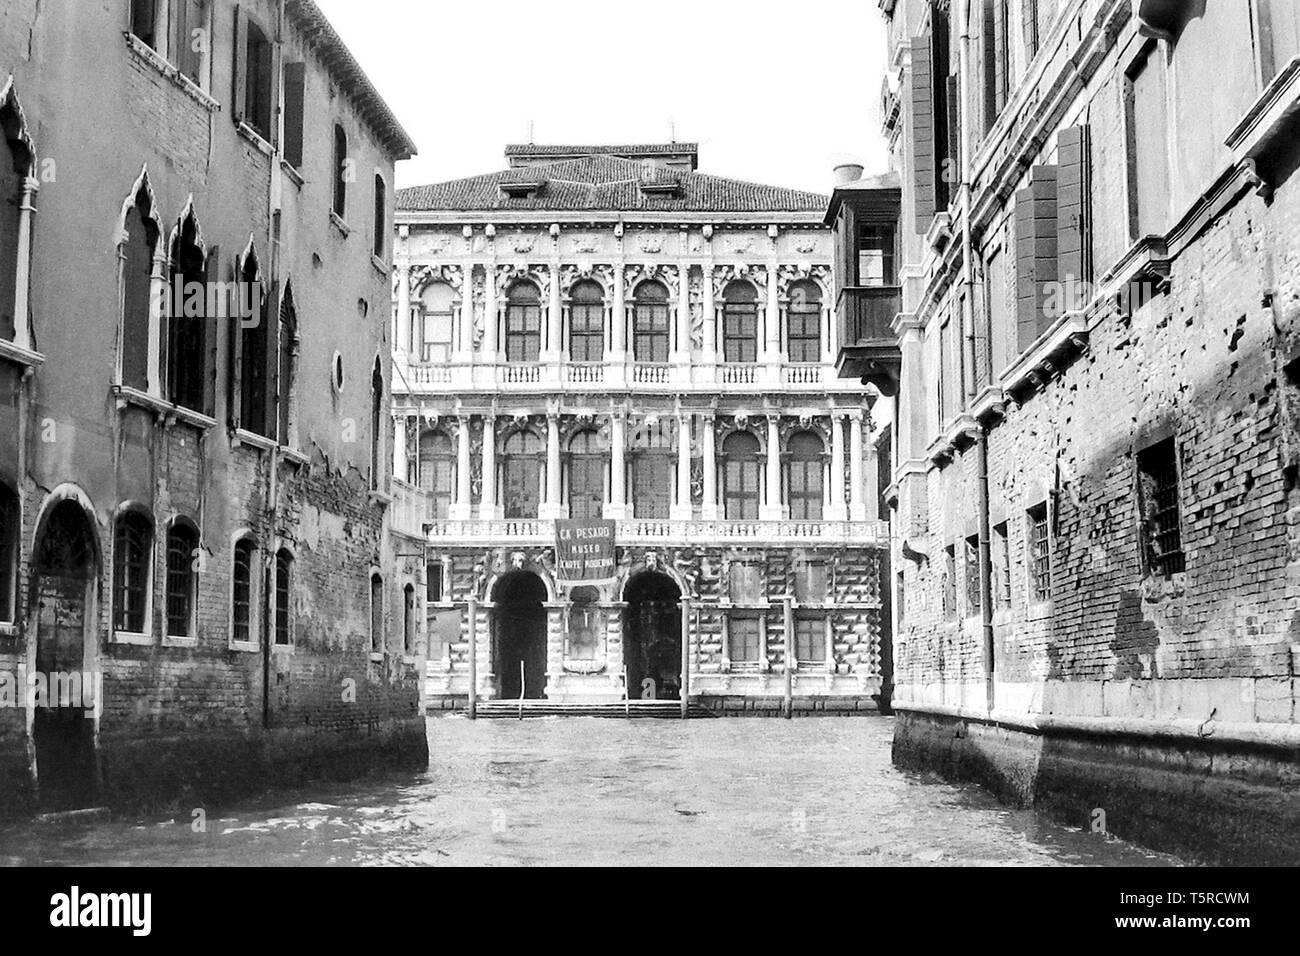 Venice, Italy, 1980 - black and white photo - 'Ca' Pesaro': Venetian palace overlooking the Canal Grande. It is home to the International Gallery of Modern Art and the Oriental Art Museum of Venice. - Stock Image